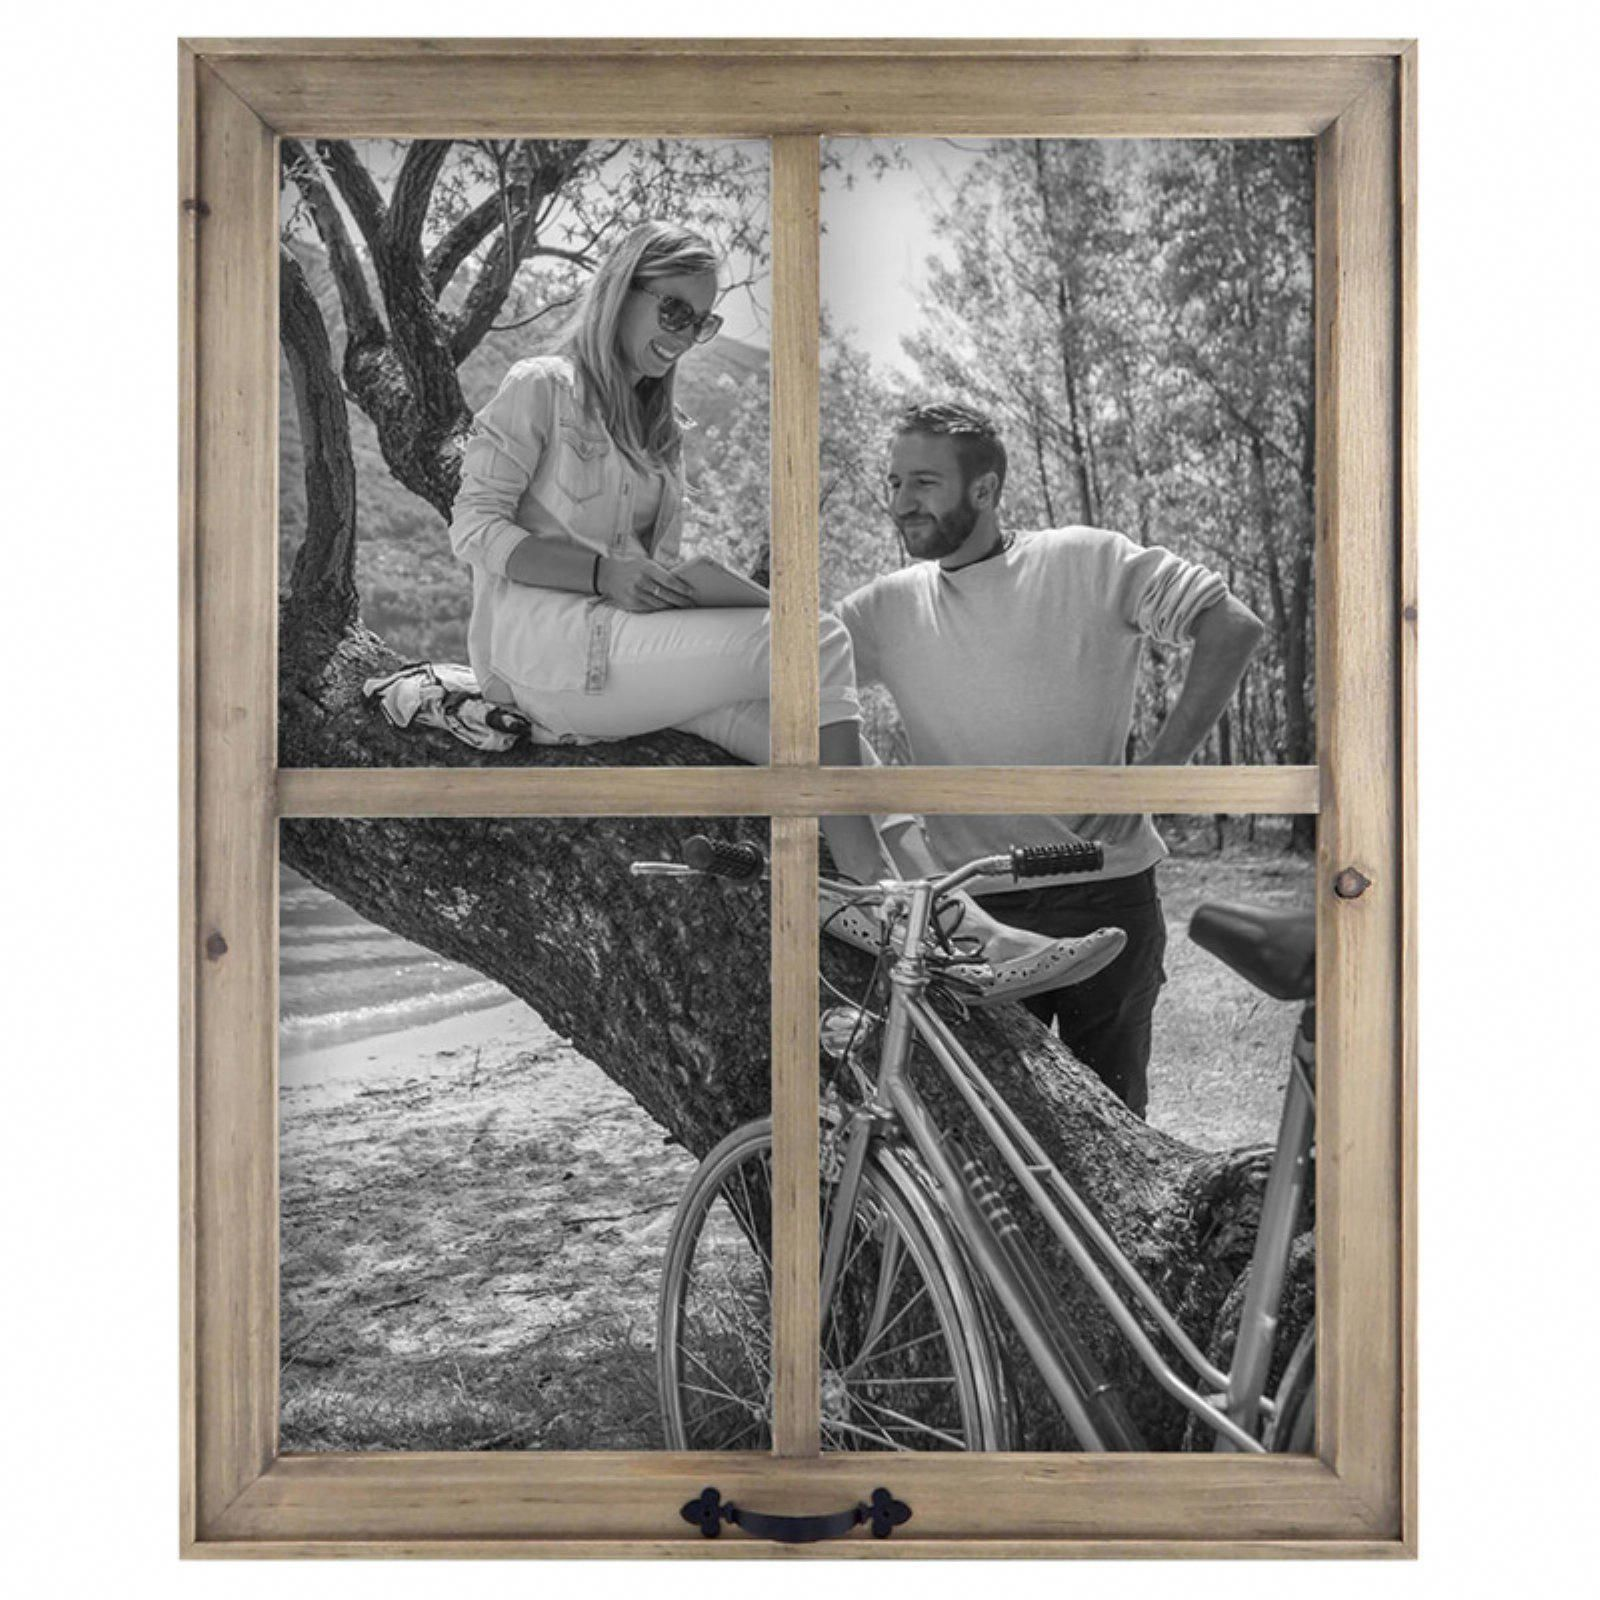 55aa29997af88df8d7e3152e59425232 - Better Homes And Gardens 4 Opening Rustic Windowpane Collage Frame